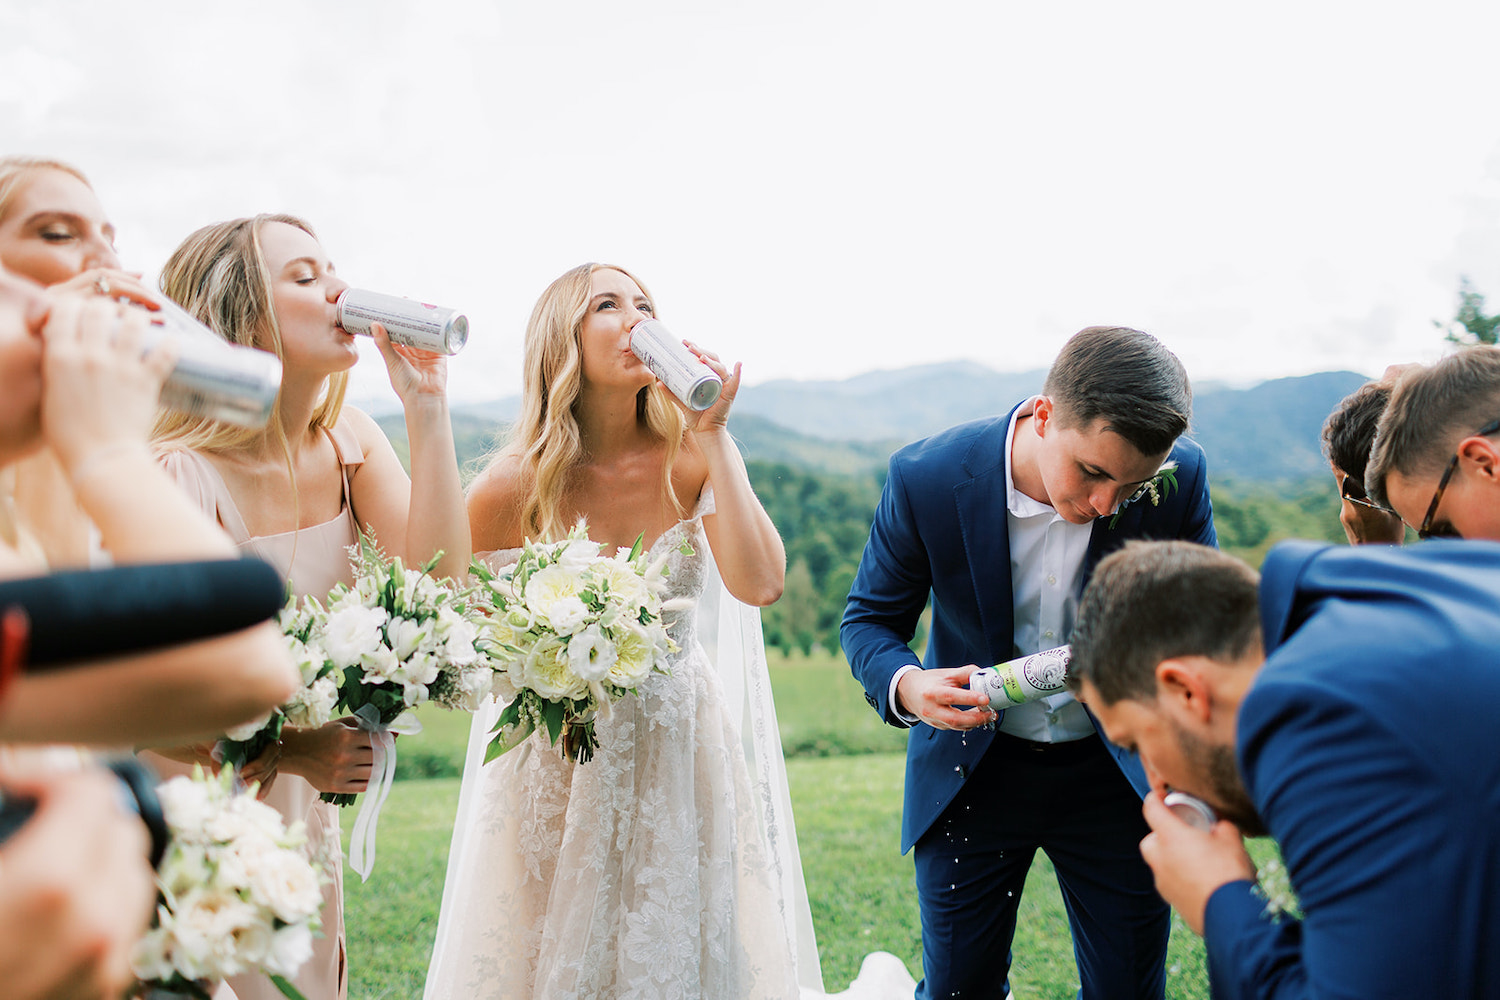 Drinking Bridal Party